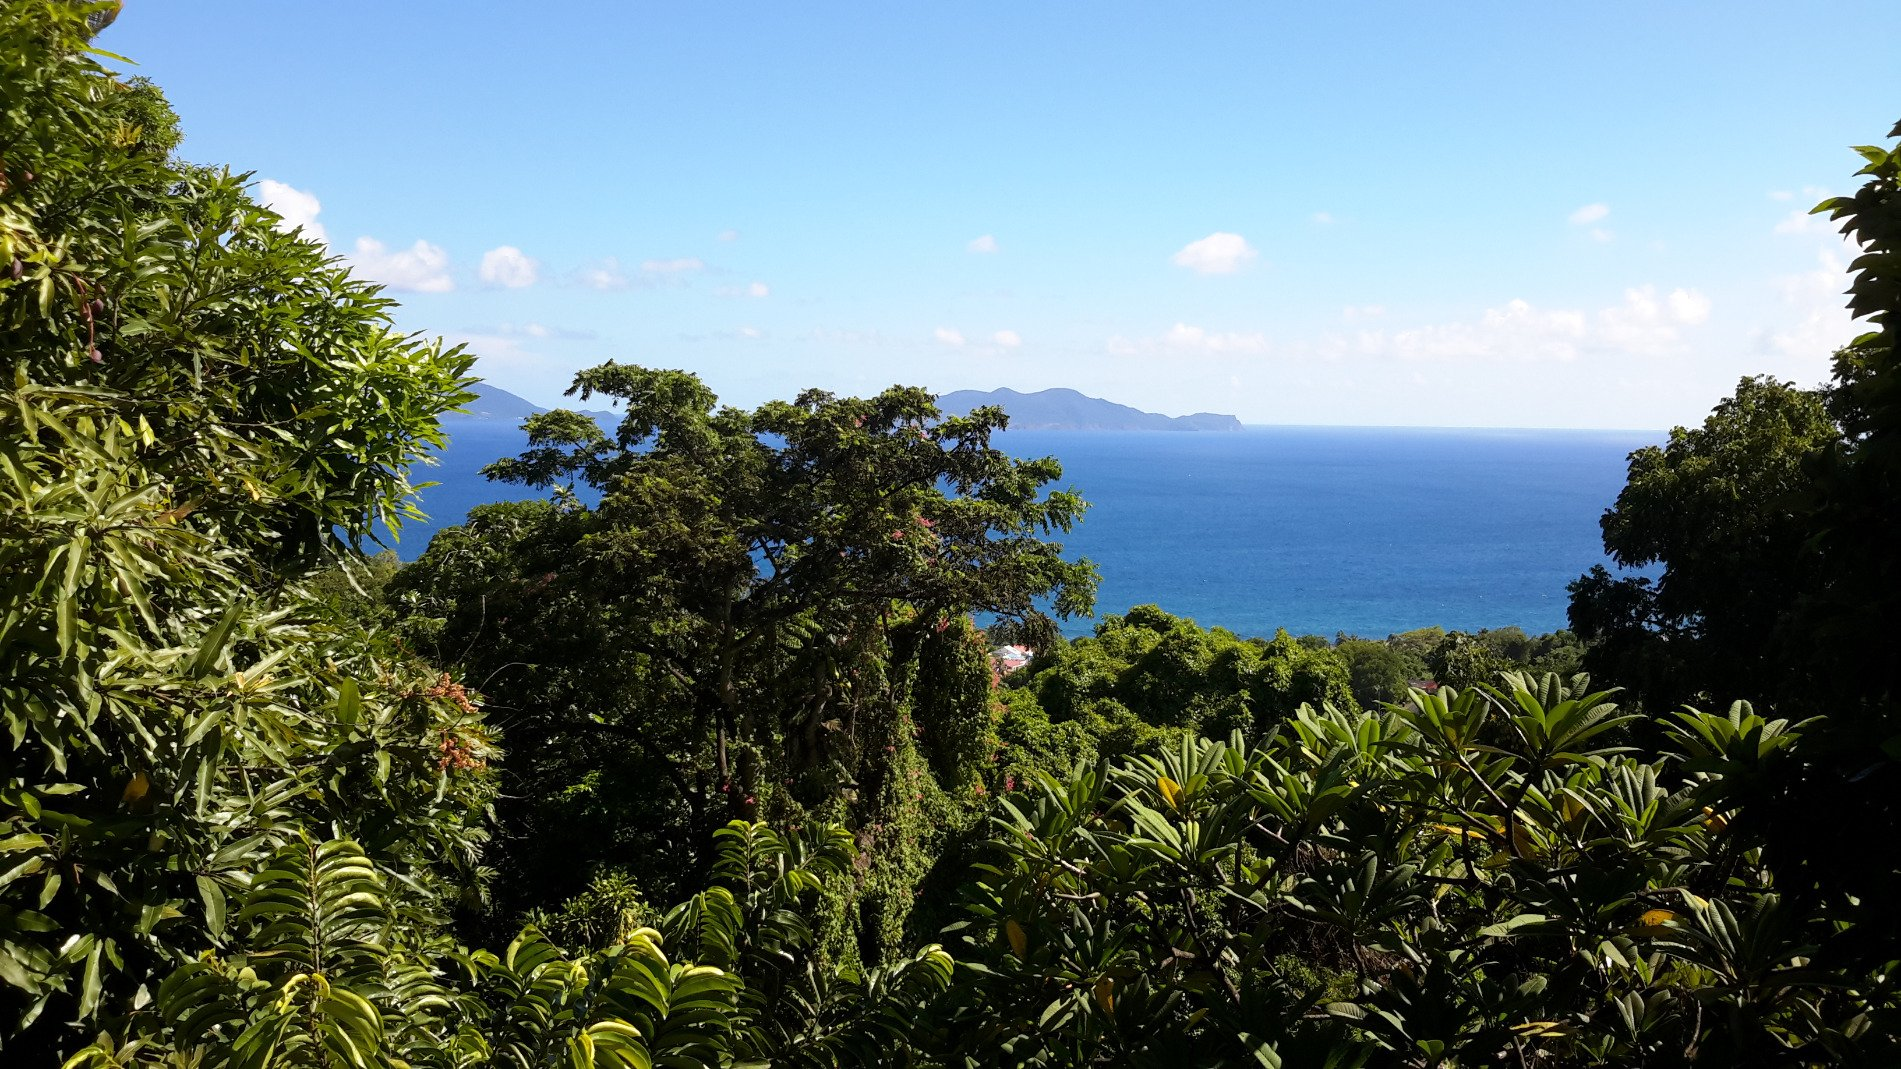 Achat maison trois rivi res 97114 guadeloupe basse terre sud r f 2006 - Maison a renover guadeloupe ...